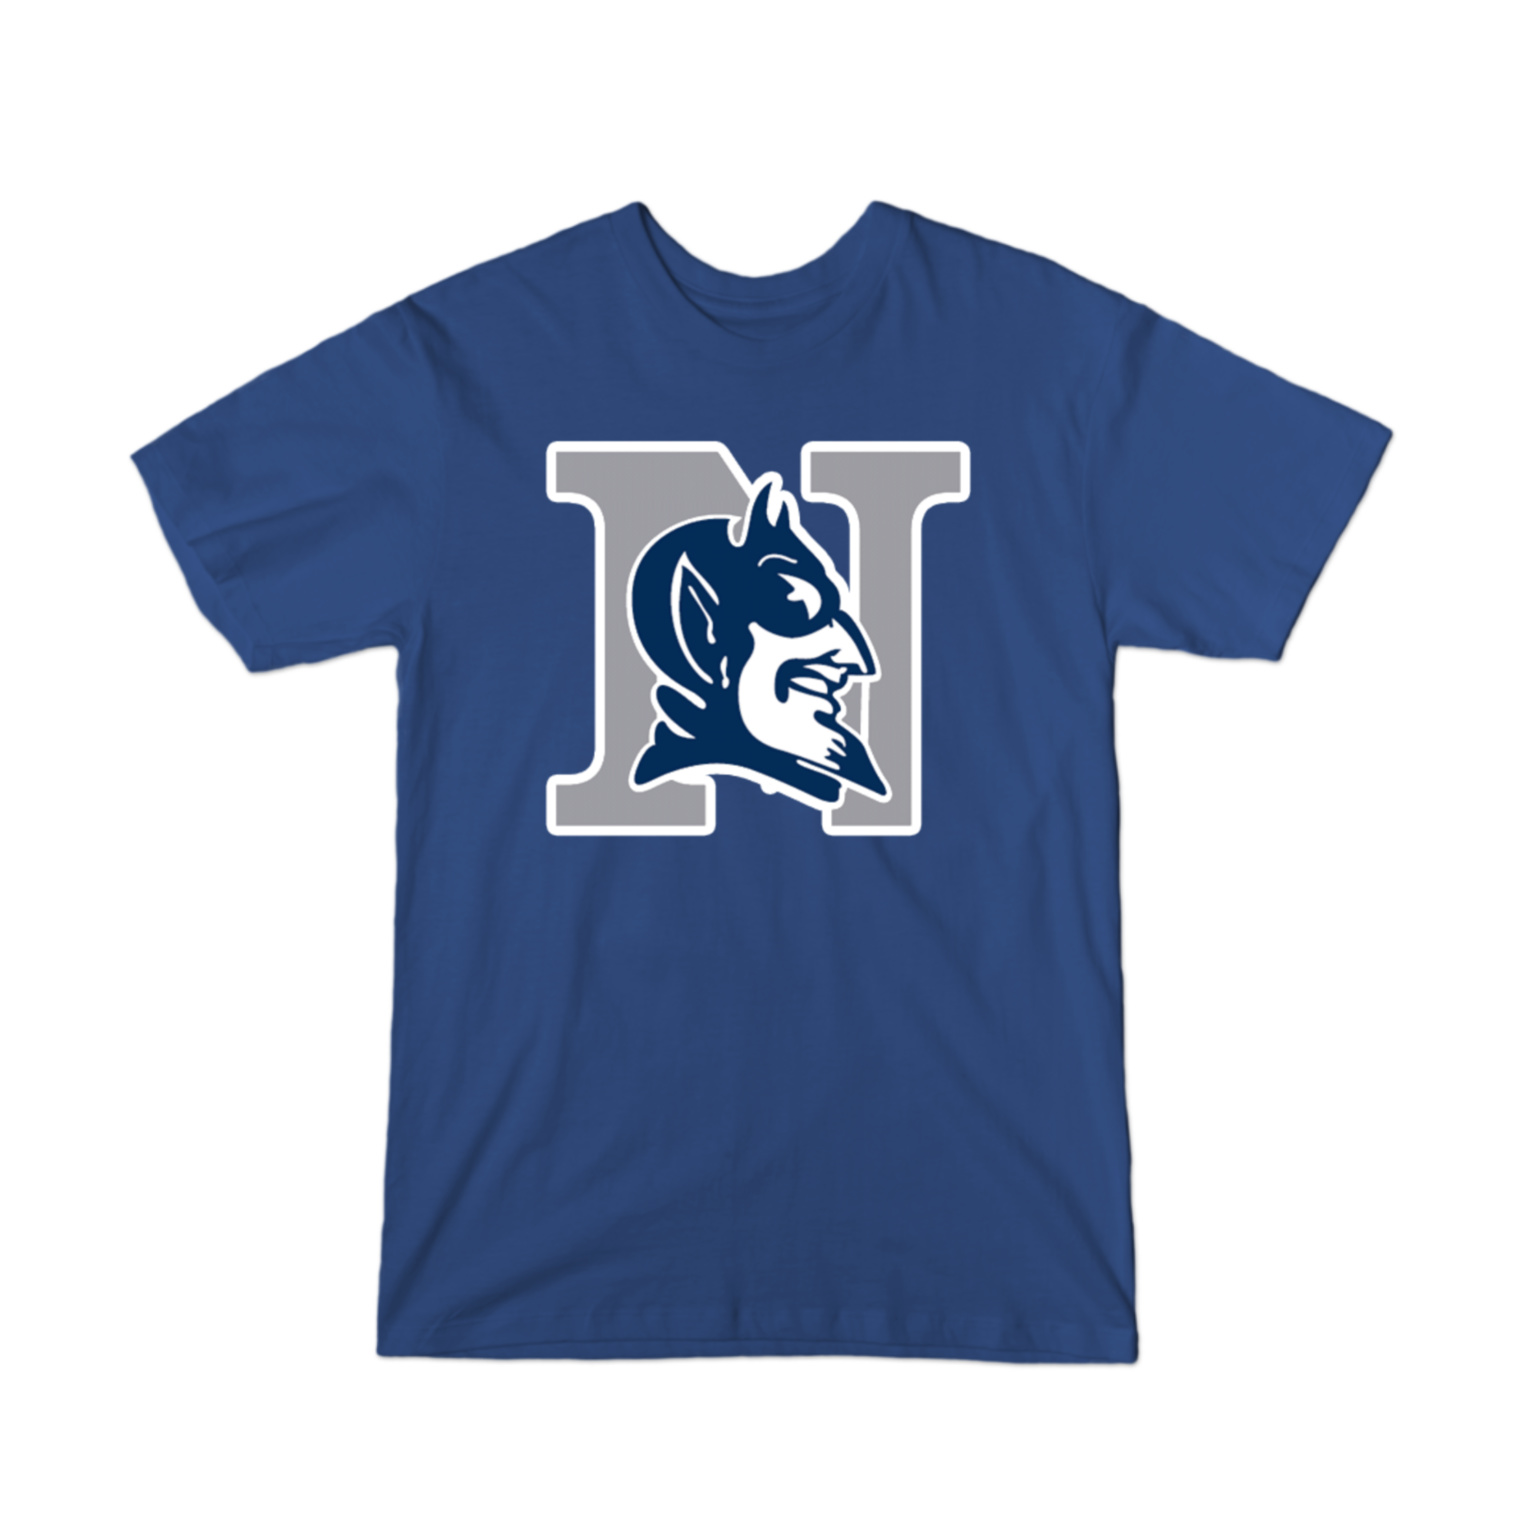 Norcross Blue Devils Youth T-Shirt